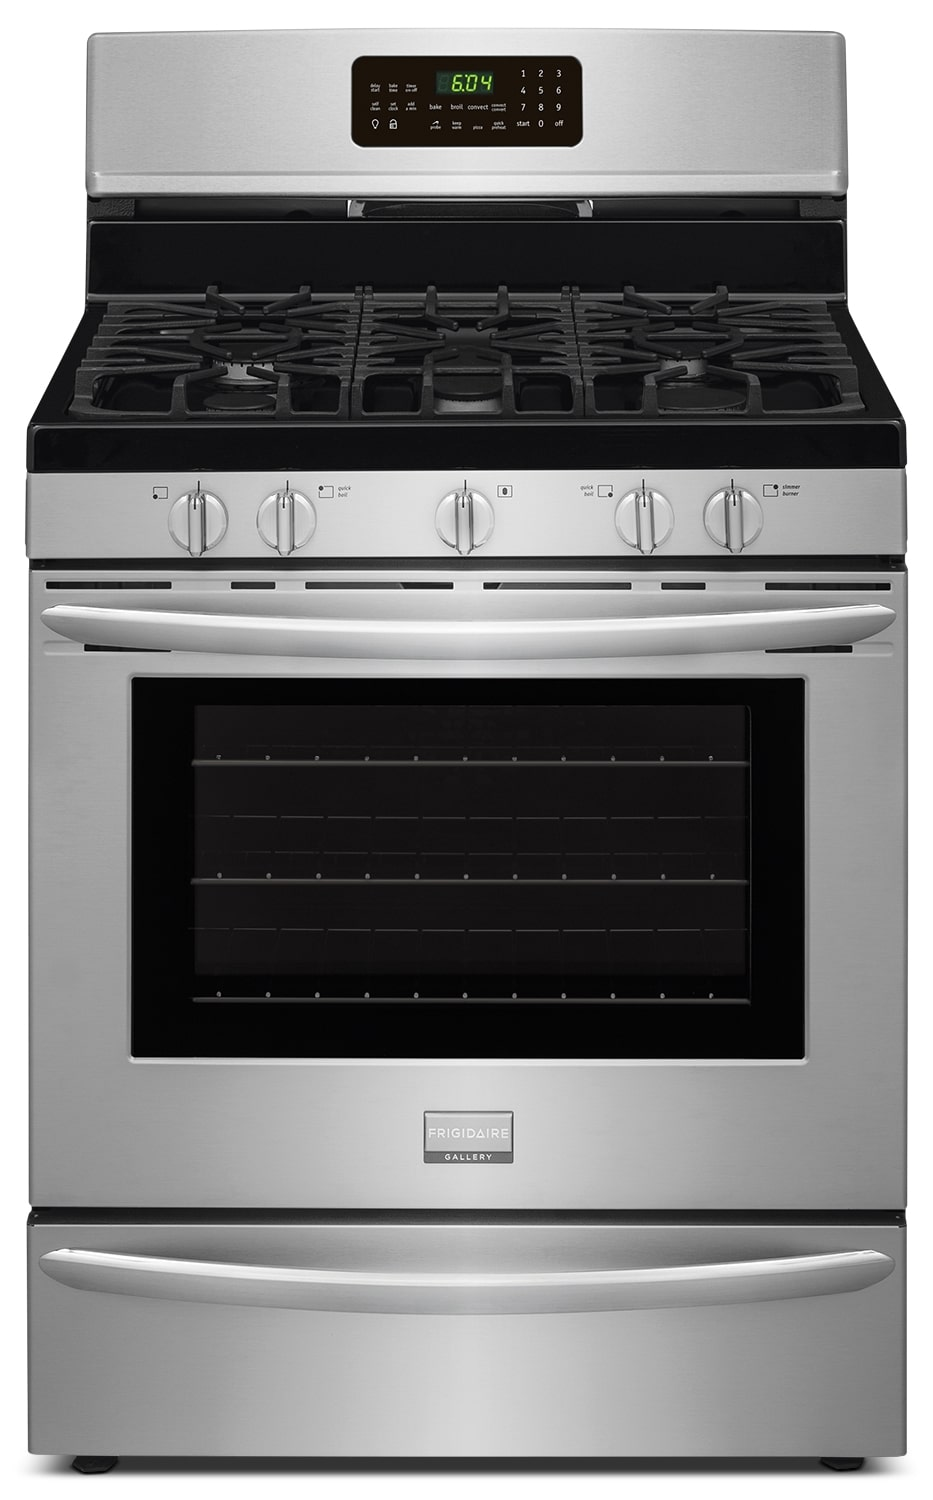 Cooking Products - Frigidaire Gallery 5.0 Cu. Ft. Freestanding Gas Range with Effortlesss™ Convection– Stainless Steel